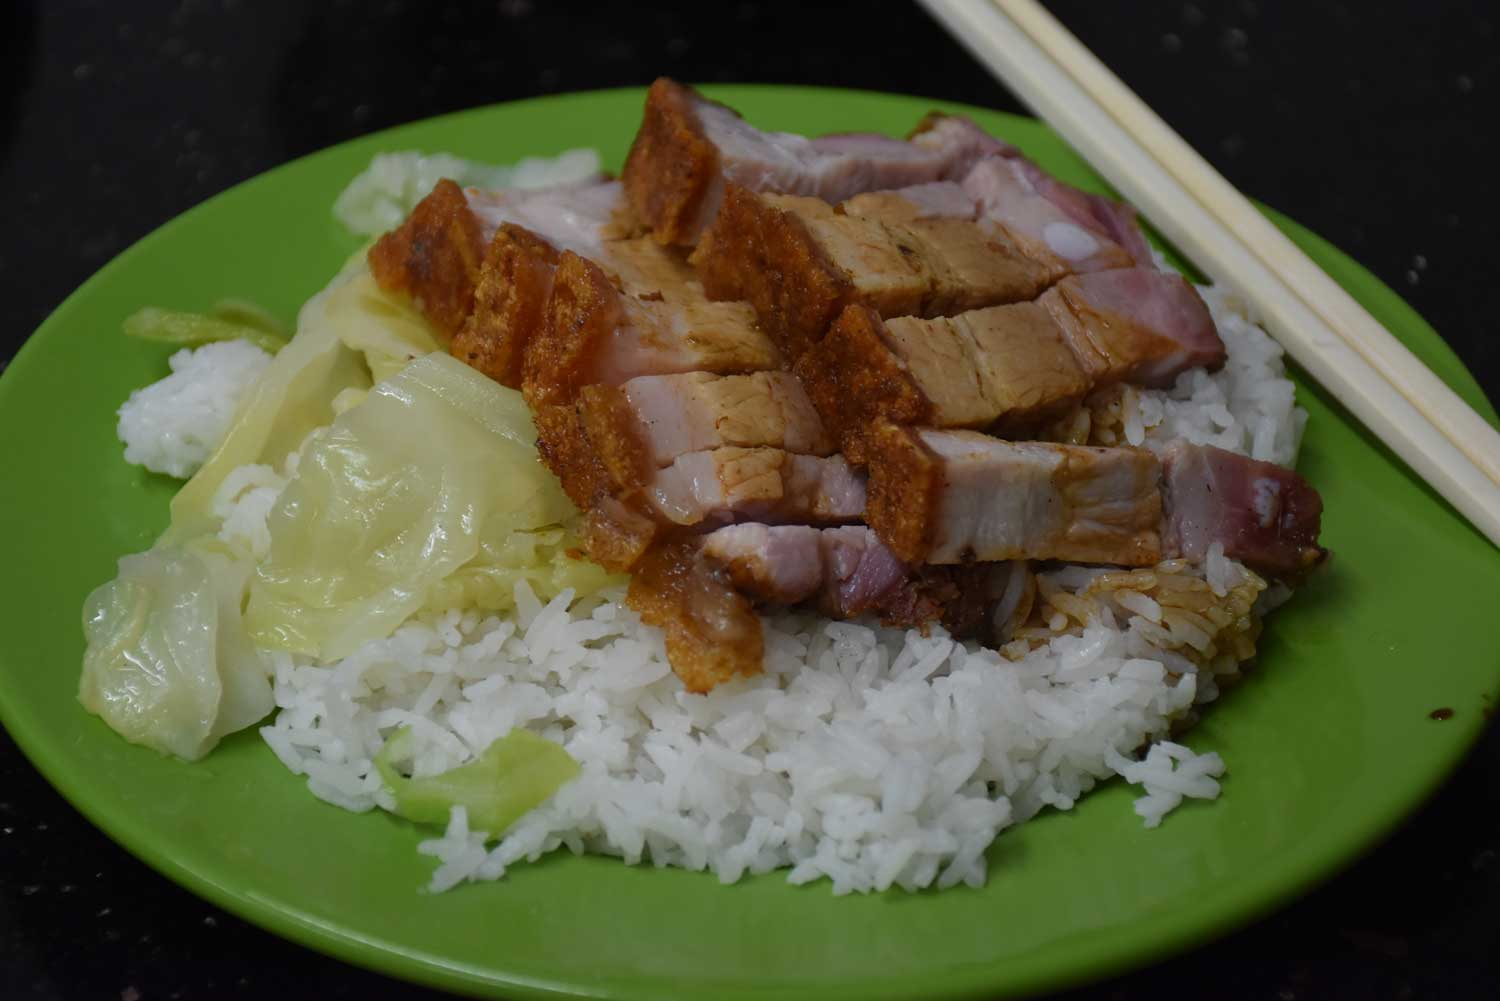 Hao Jing Fan Dian pork rice